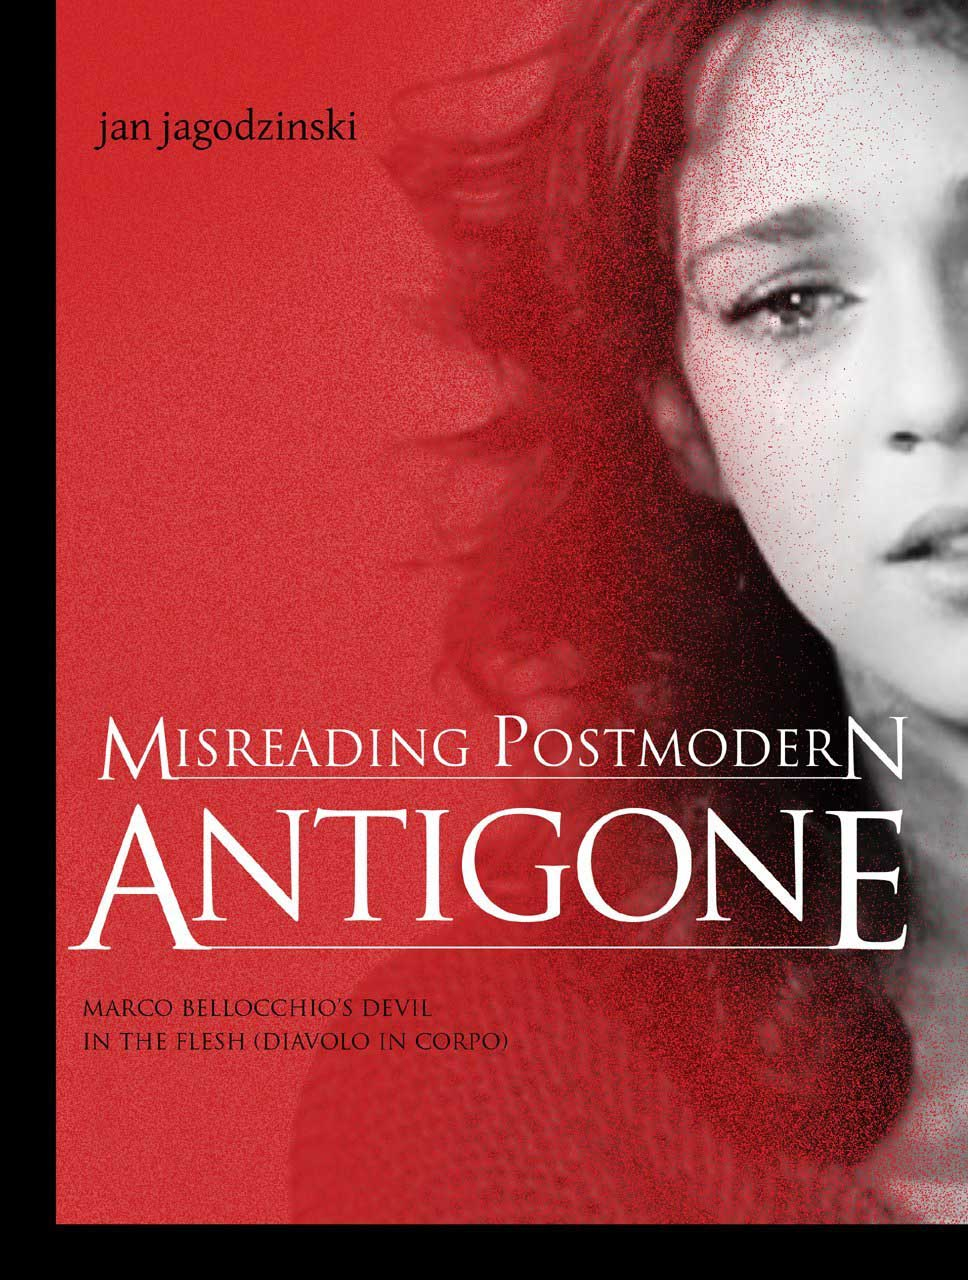 Misreading Postmodern Antigone – Marco Bellocchio?s Devil in the Flesh (Diavolo in Corpo)